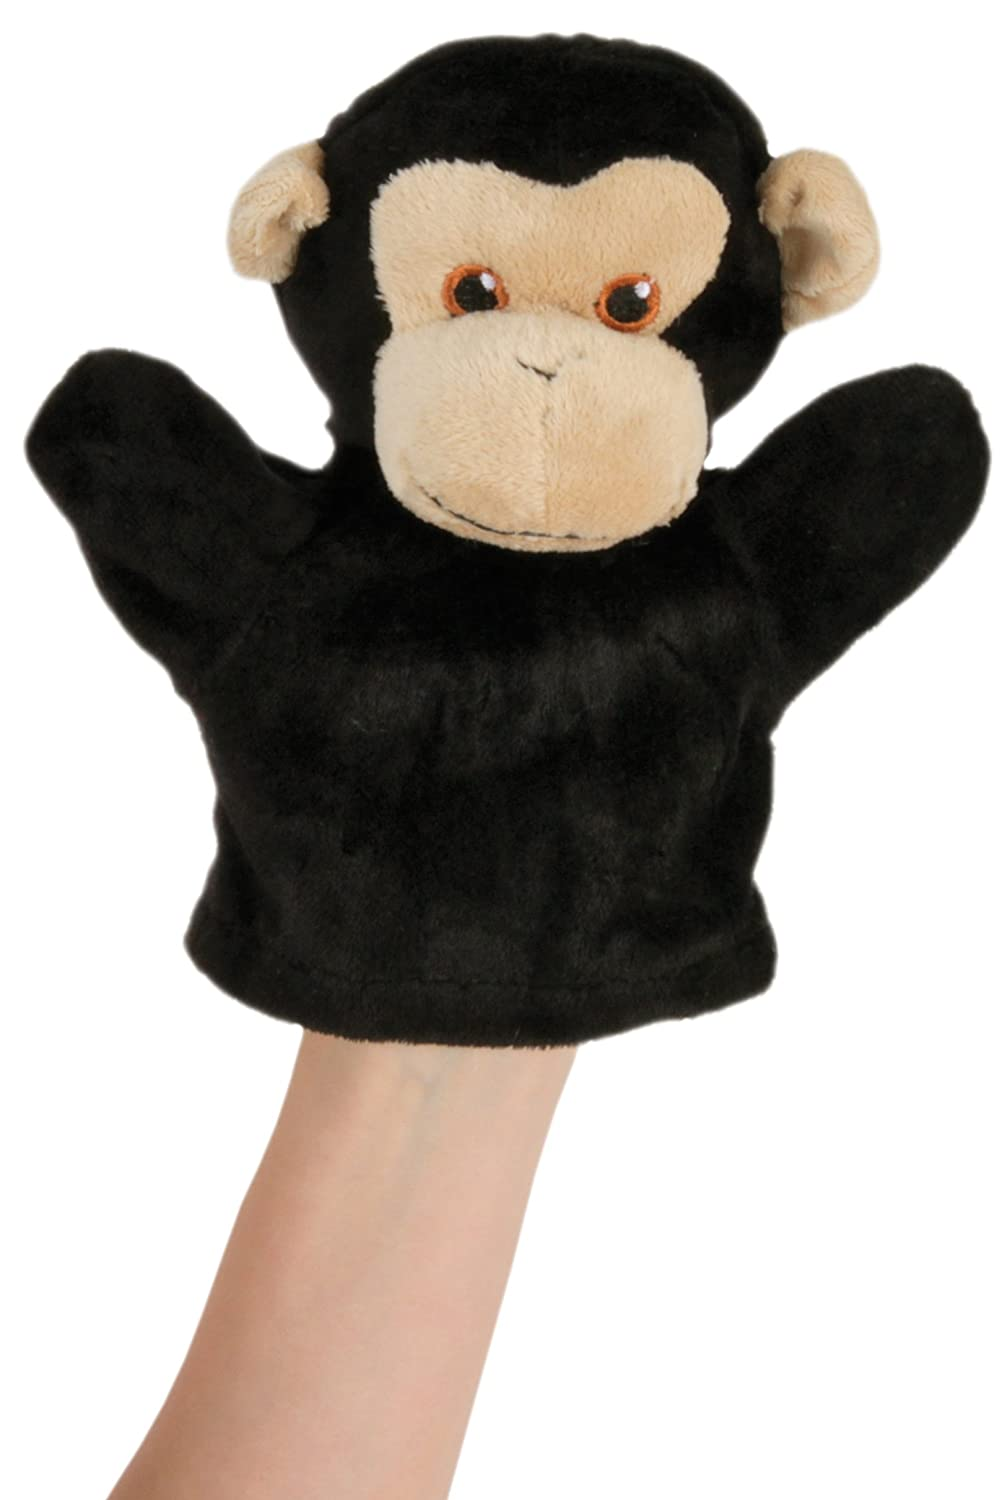 My First Puppet Chimp Hand Puppet The Puppet Company